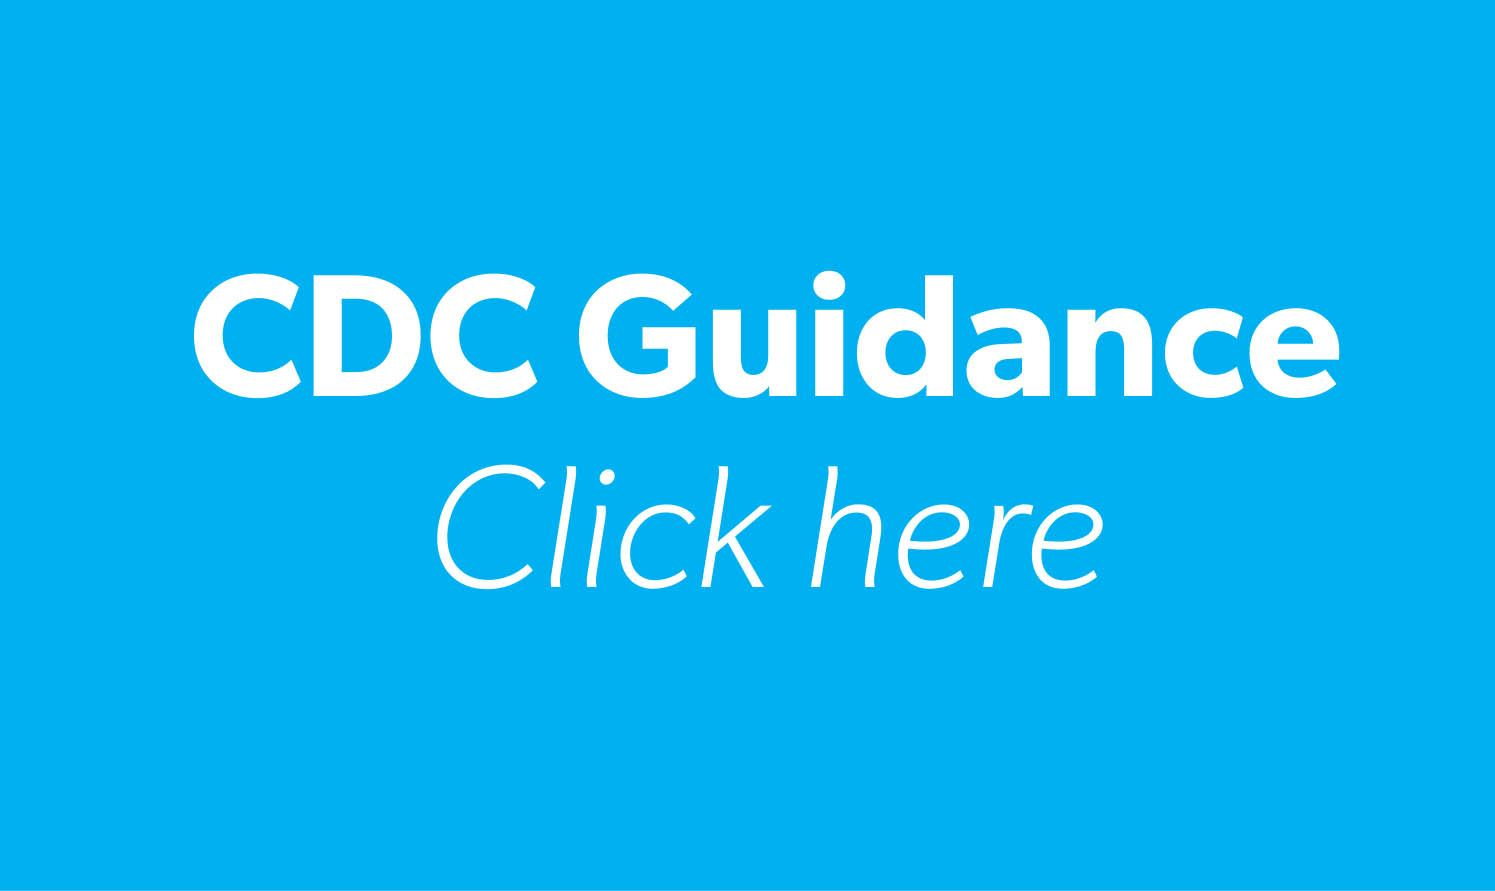 CDC Guidance tile